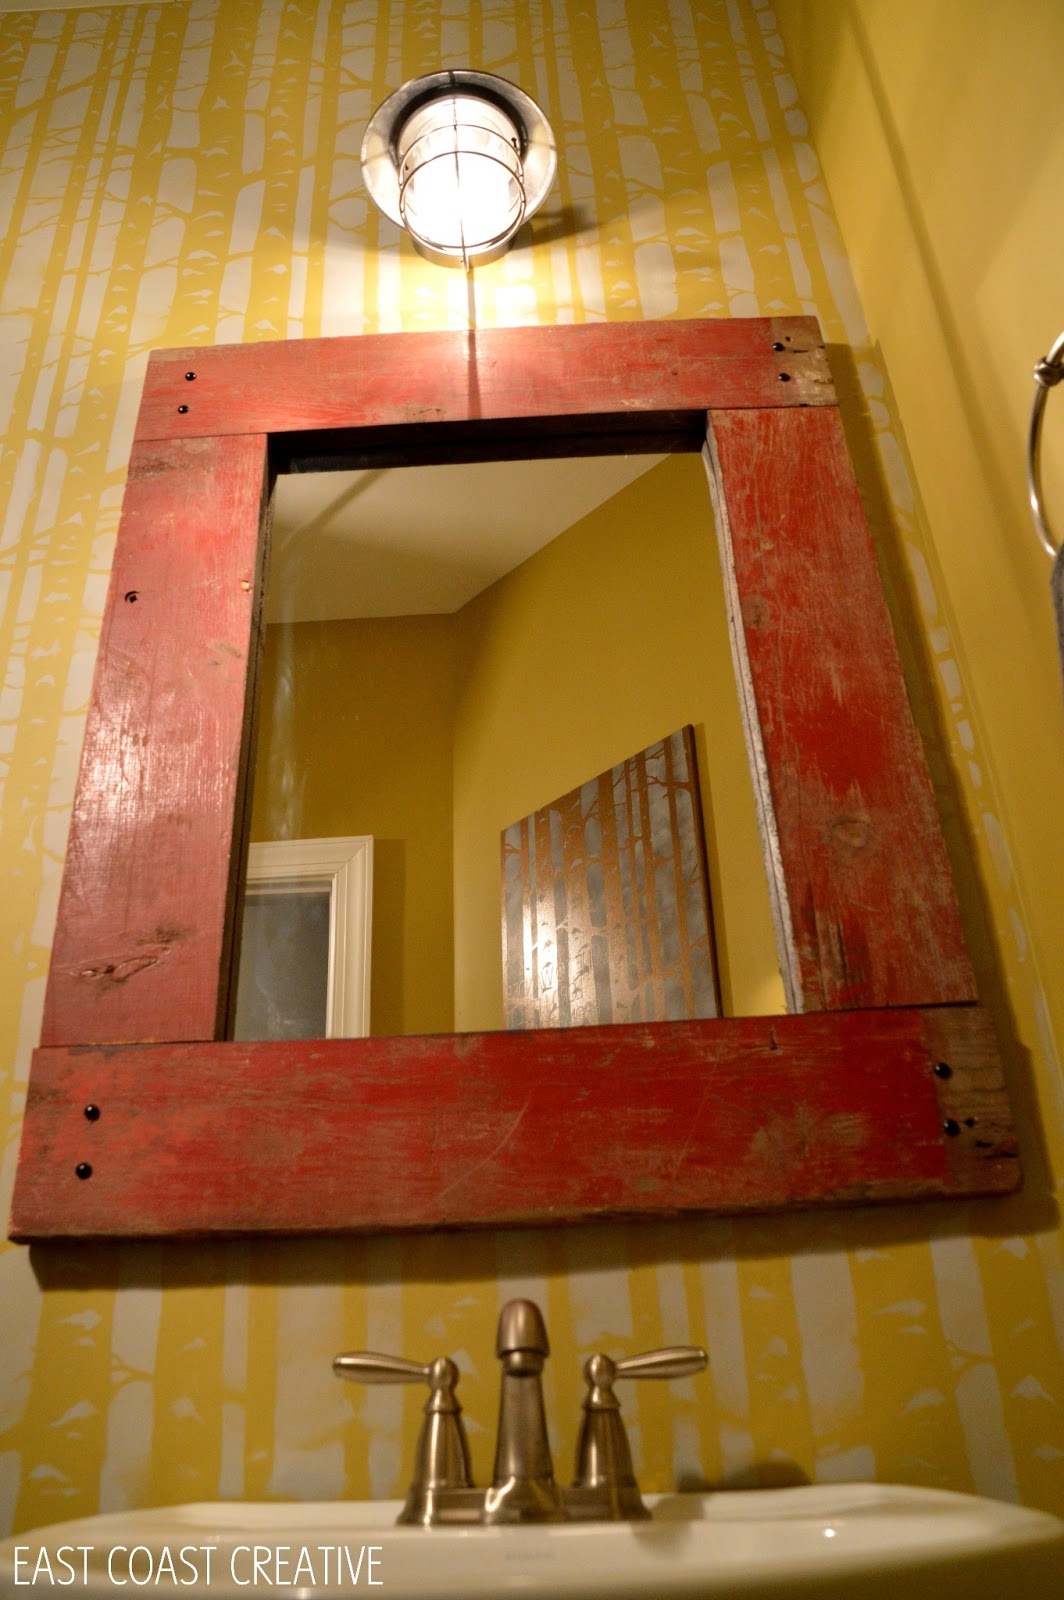 Barnwood Framed Bathroom Mirrors how to make a wood framed mirror - east coast creative blog